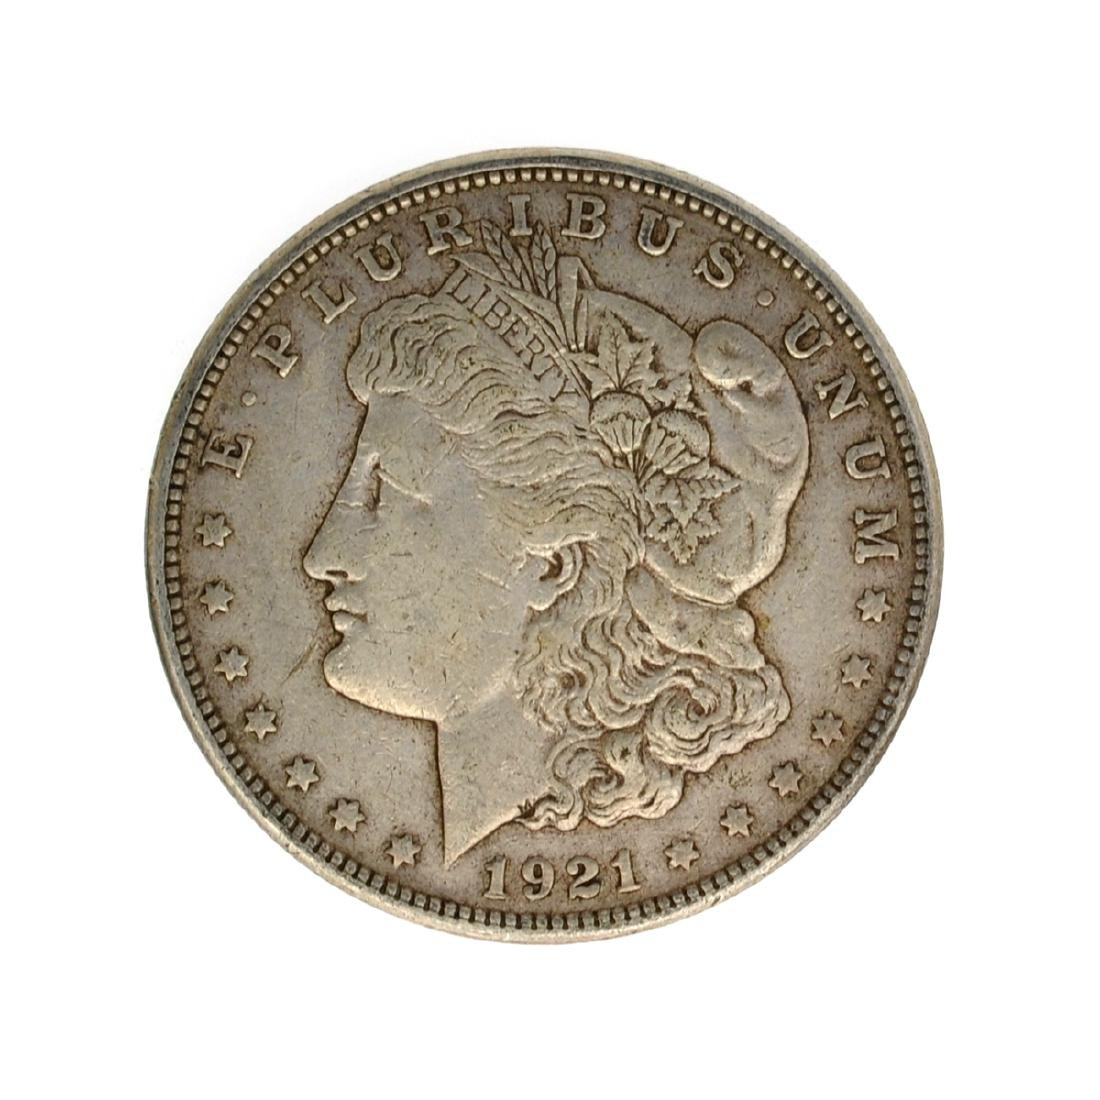 1921 Morgan Silver Dollar Coin